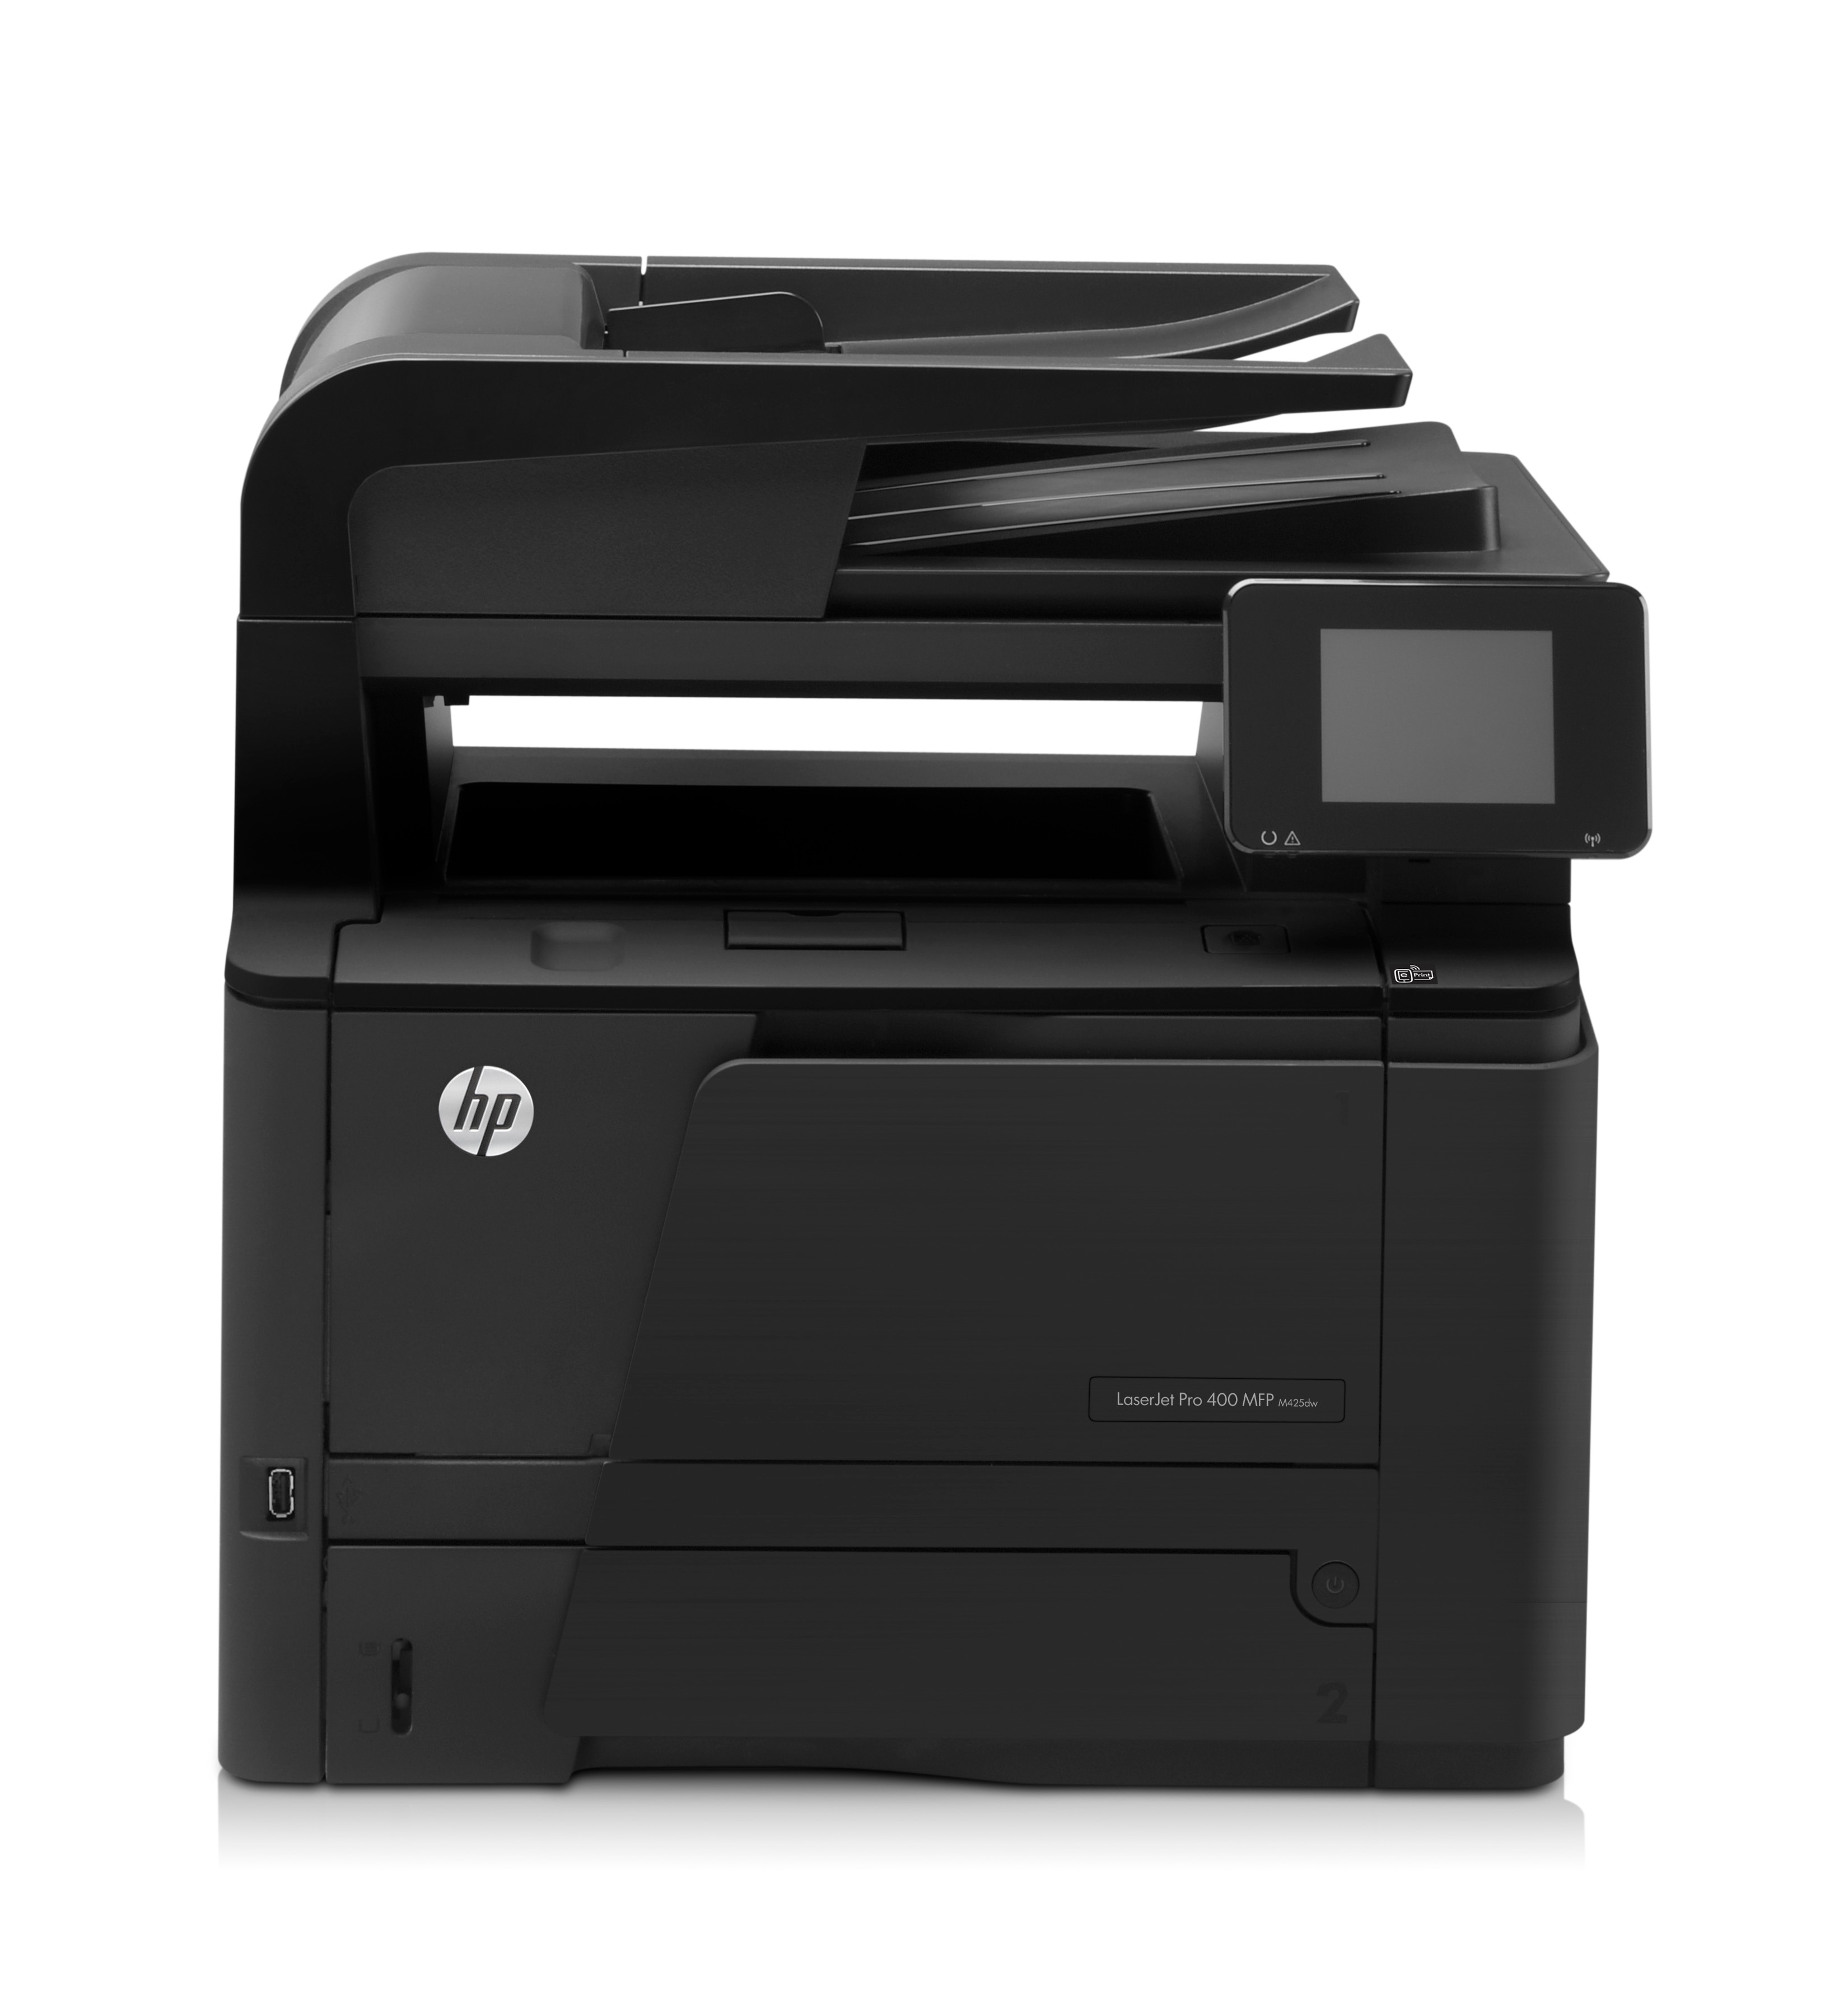 CF288A HP Laserjet Pro 400 M425DW Printer